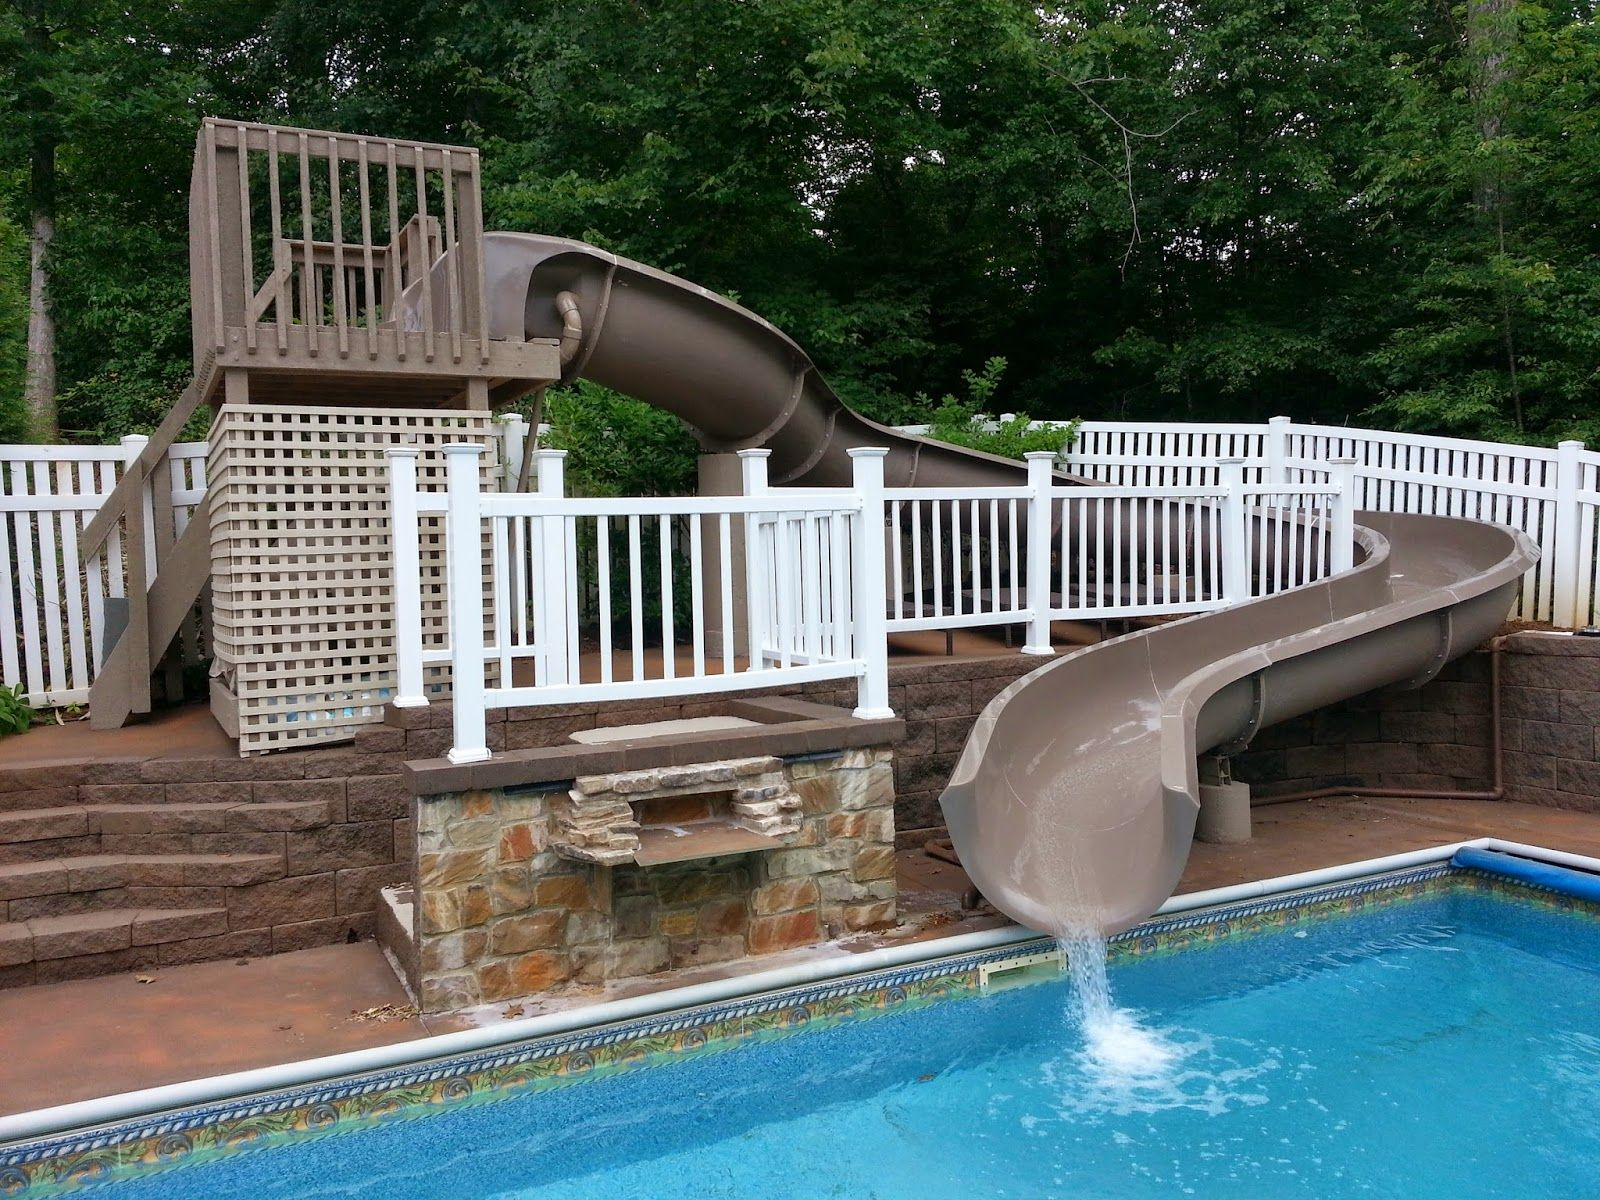 Residential water slides for pools step 3 tada you - Commercial swimming pool water slides ...